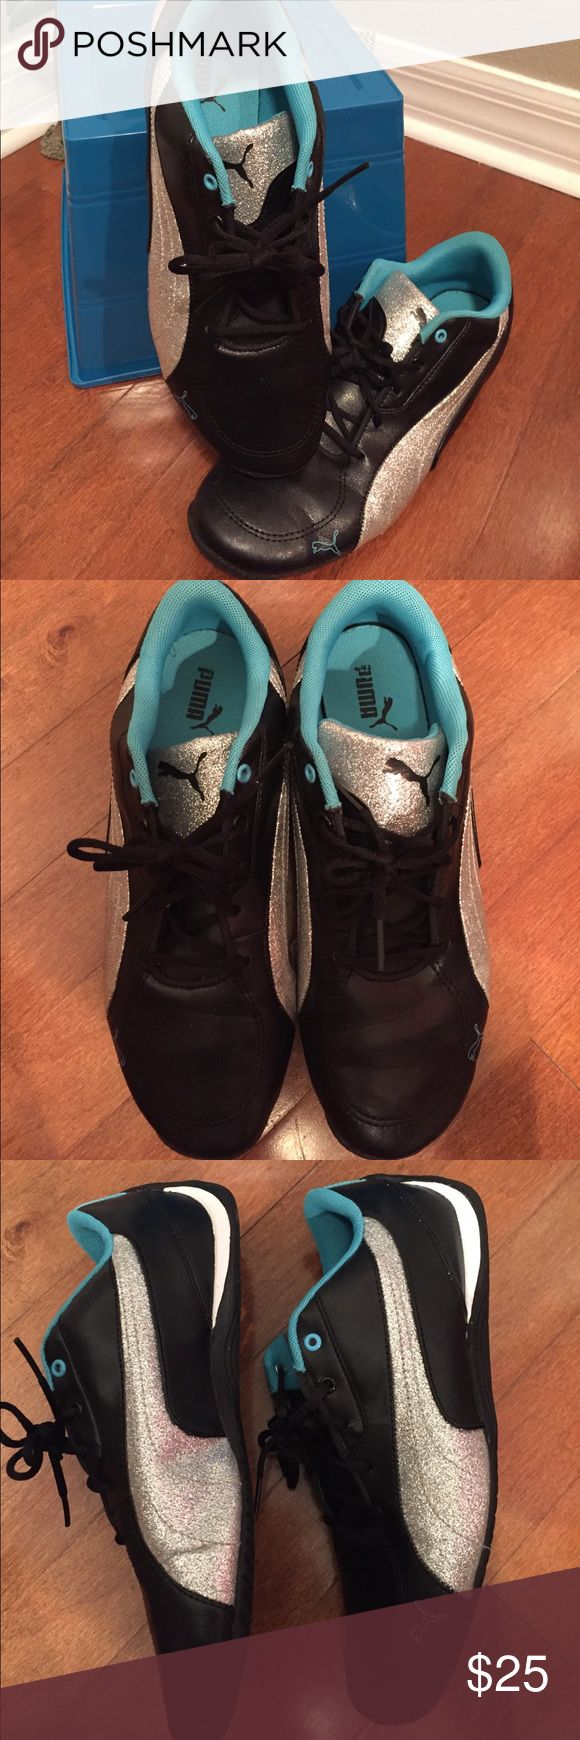 Women's Puma Tennis Shoes Black, Turquoise and Glittery Silver Sporty Pumas. Women's size 6.5. Worn a few times but in super condition. I'm more of an Adidas Girl unfortunately☺️so hopefully someone will L💙VE these pretty lil pumas! Very cute, smoke free home 🏡 Puma Shoes Sneakers